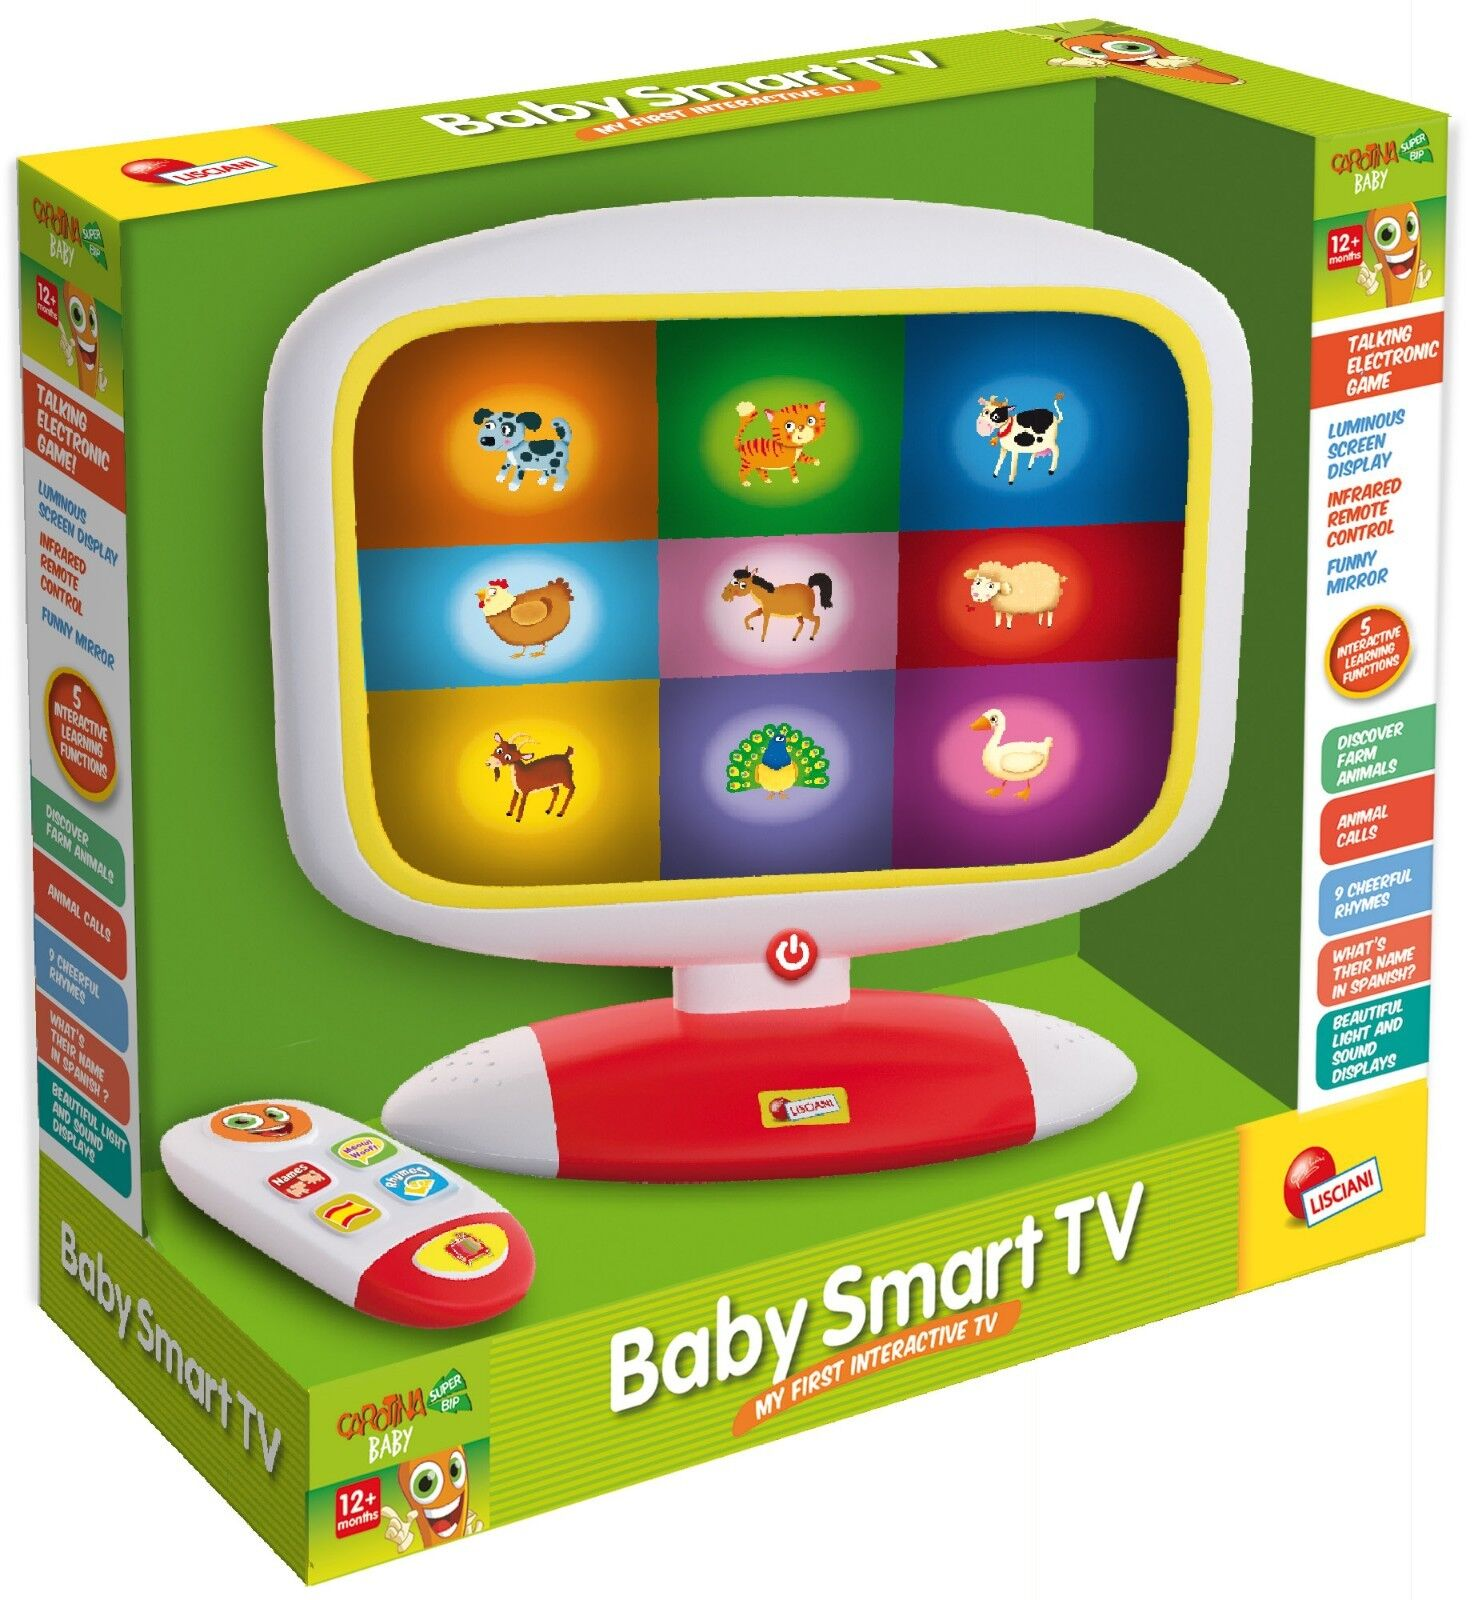 Baby Smart TV Interactive TV with Remote Animal Rhymes Caredina by Lisciani